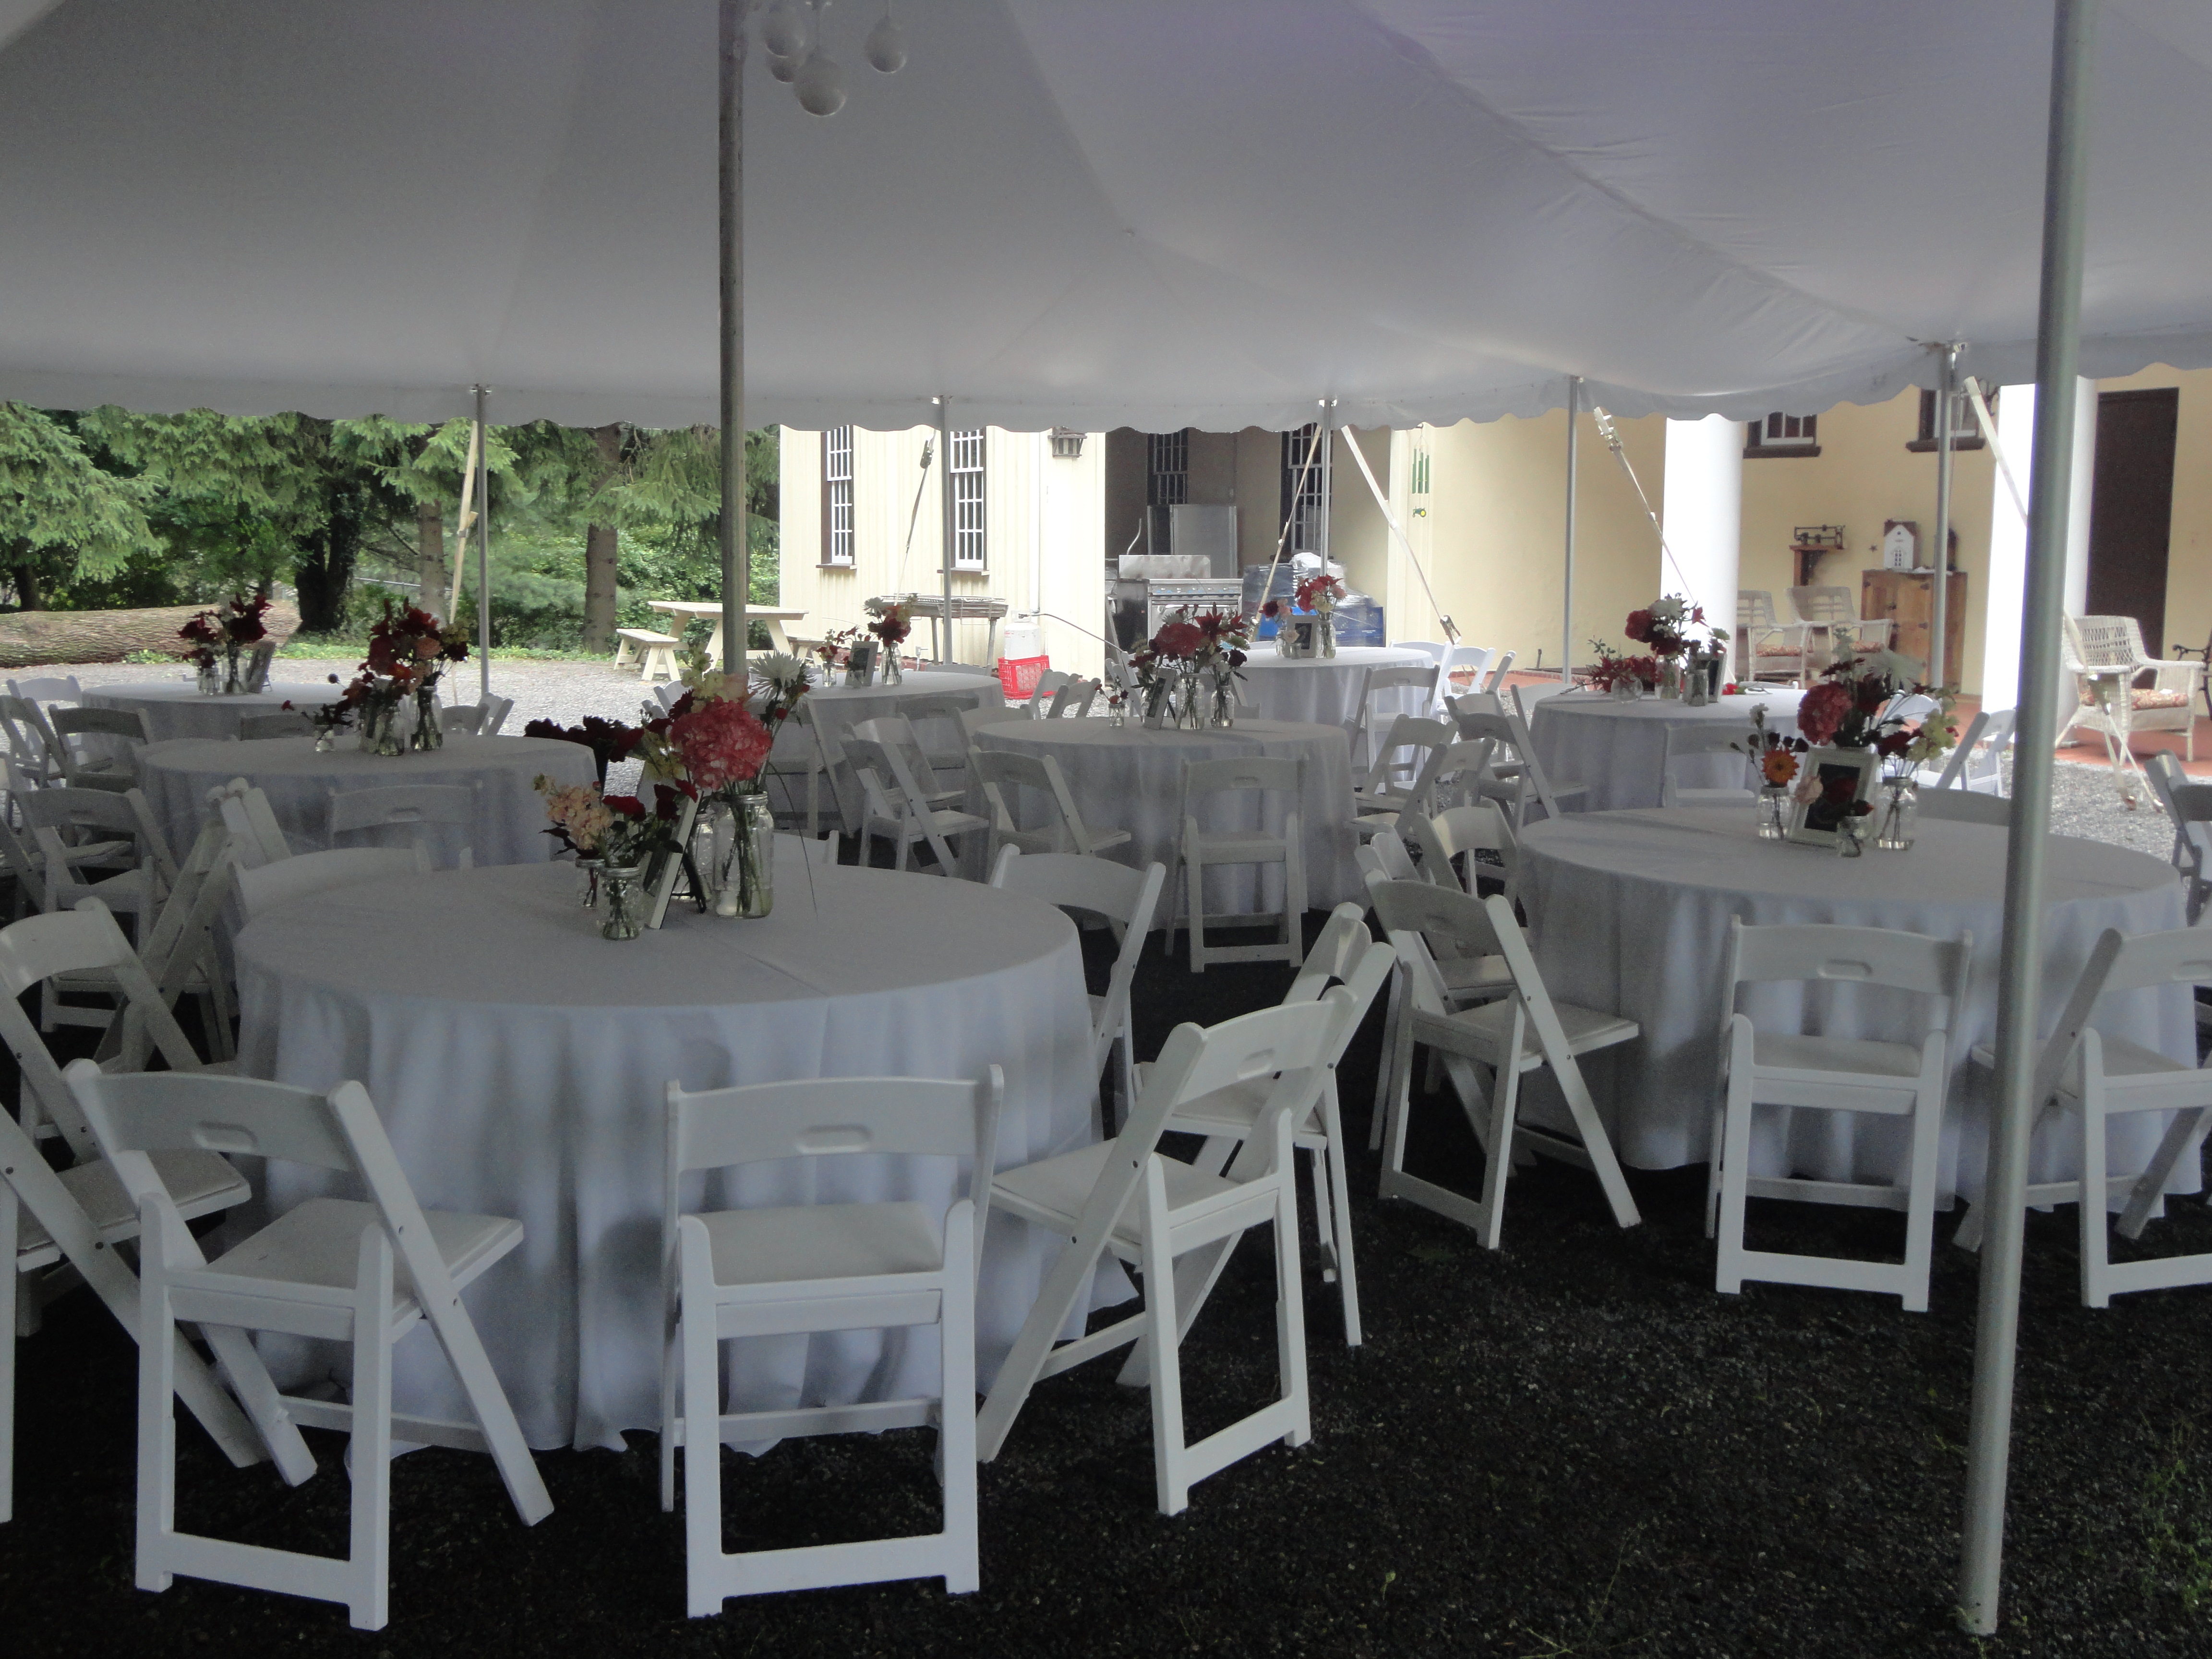 White Resin Chairs for Rent  General Rental Center